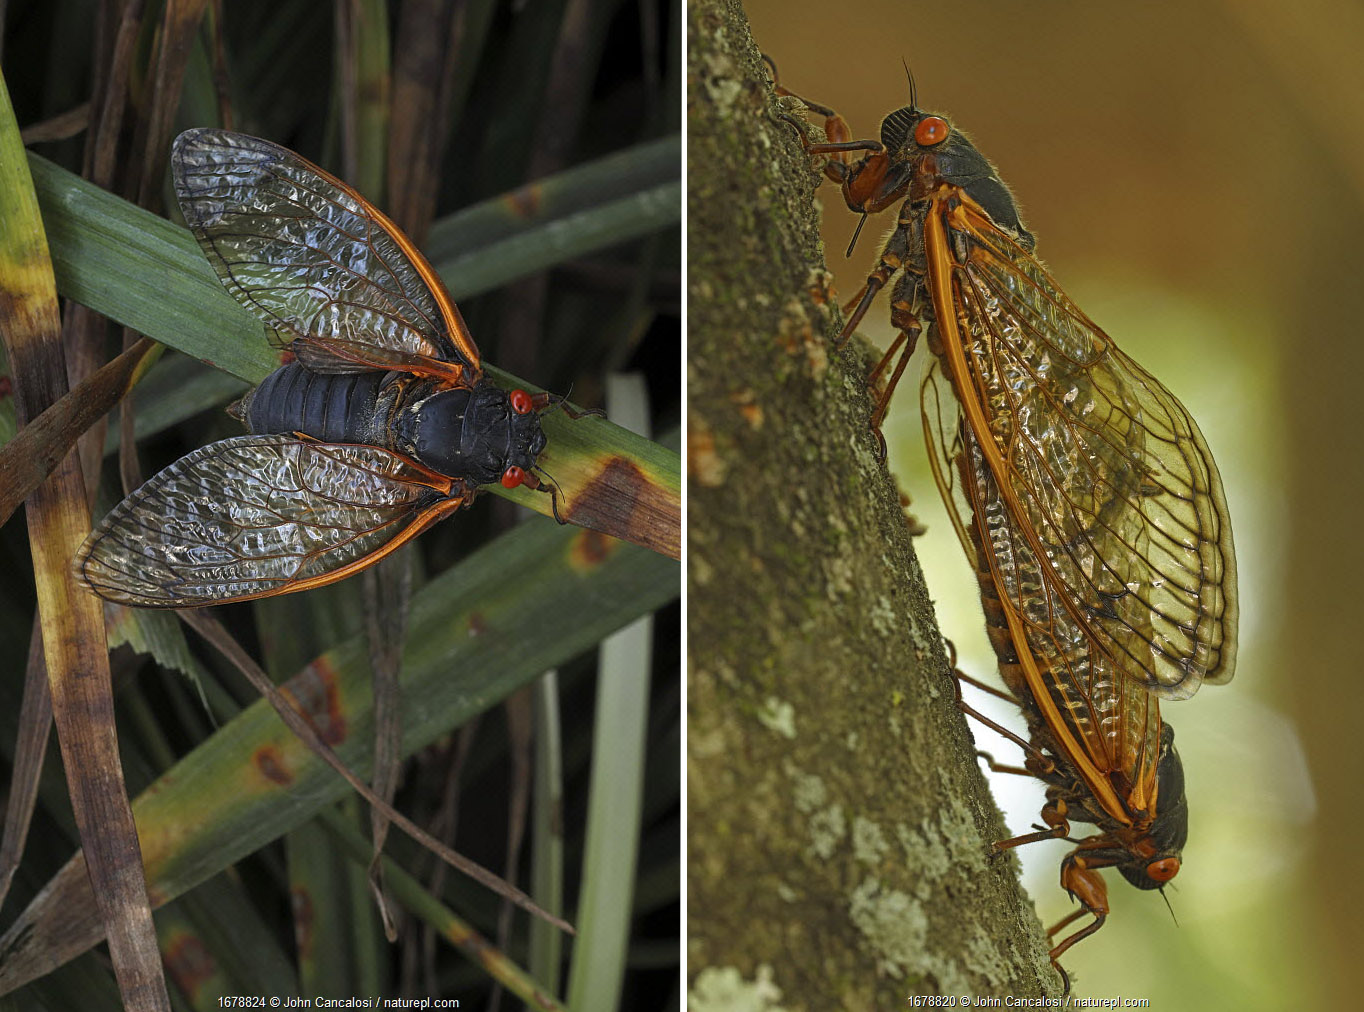 17 year Periodical cicada (Magicicada septendecim) adult (left), and adults mating (right). Brood X cicada. Maryland, USA, June 2021